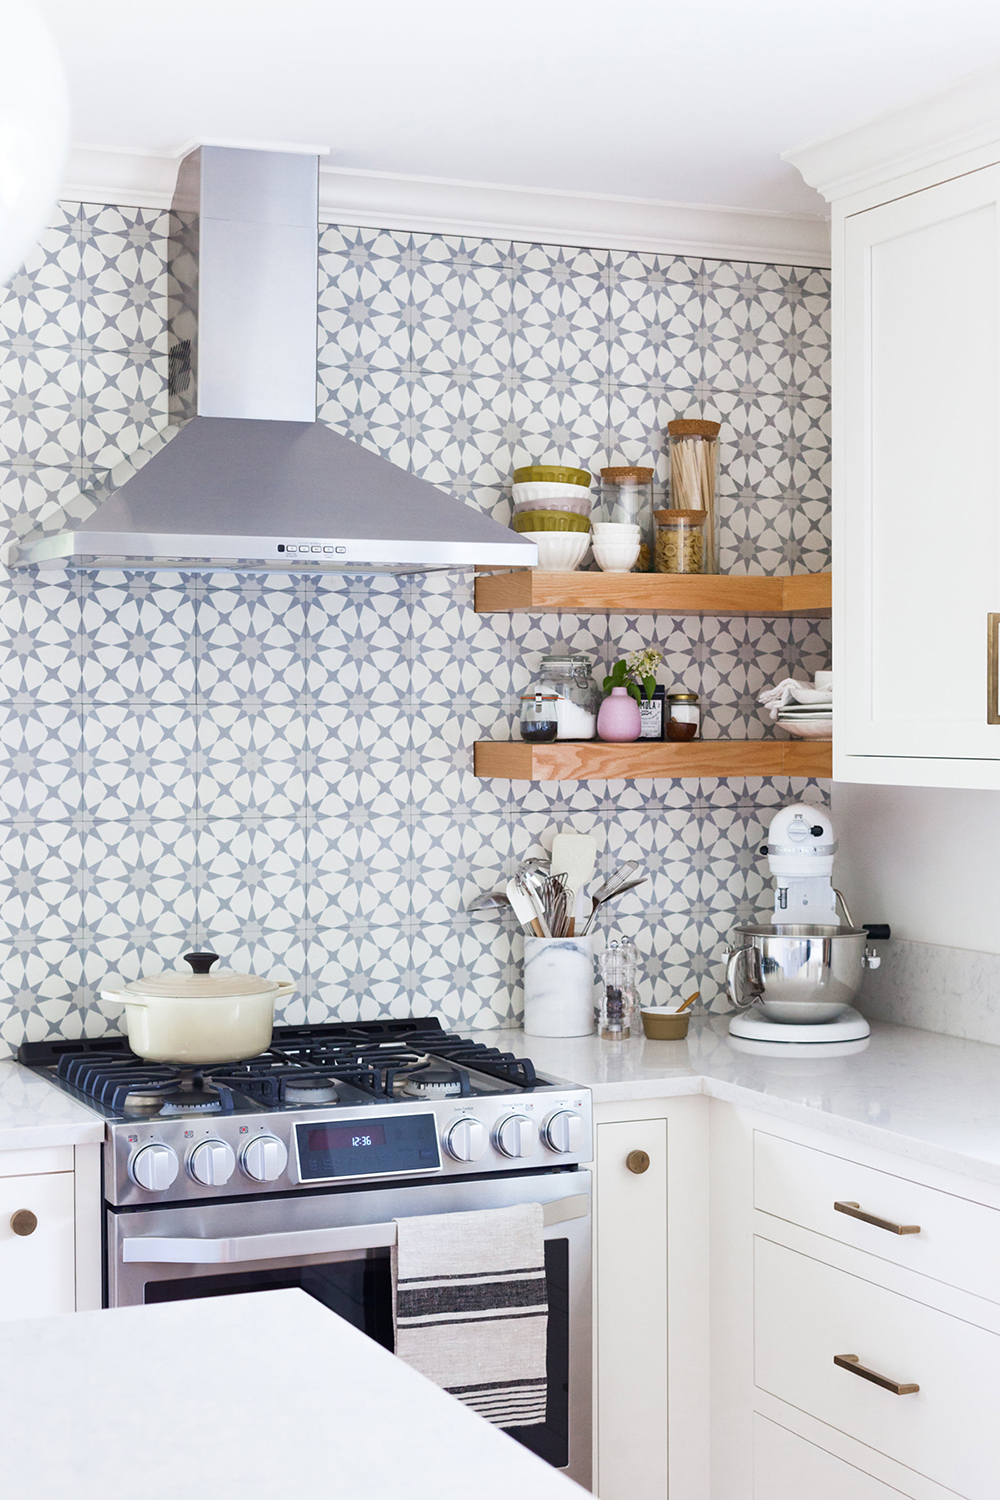 Roundup : Affordable Patterned Floor Tile - roomfortuesday.com